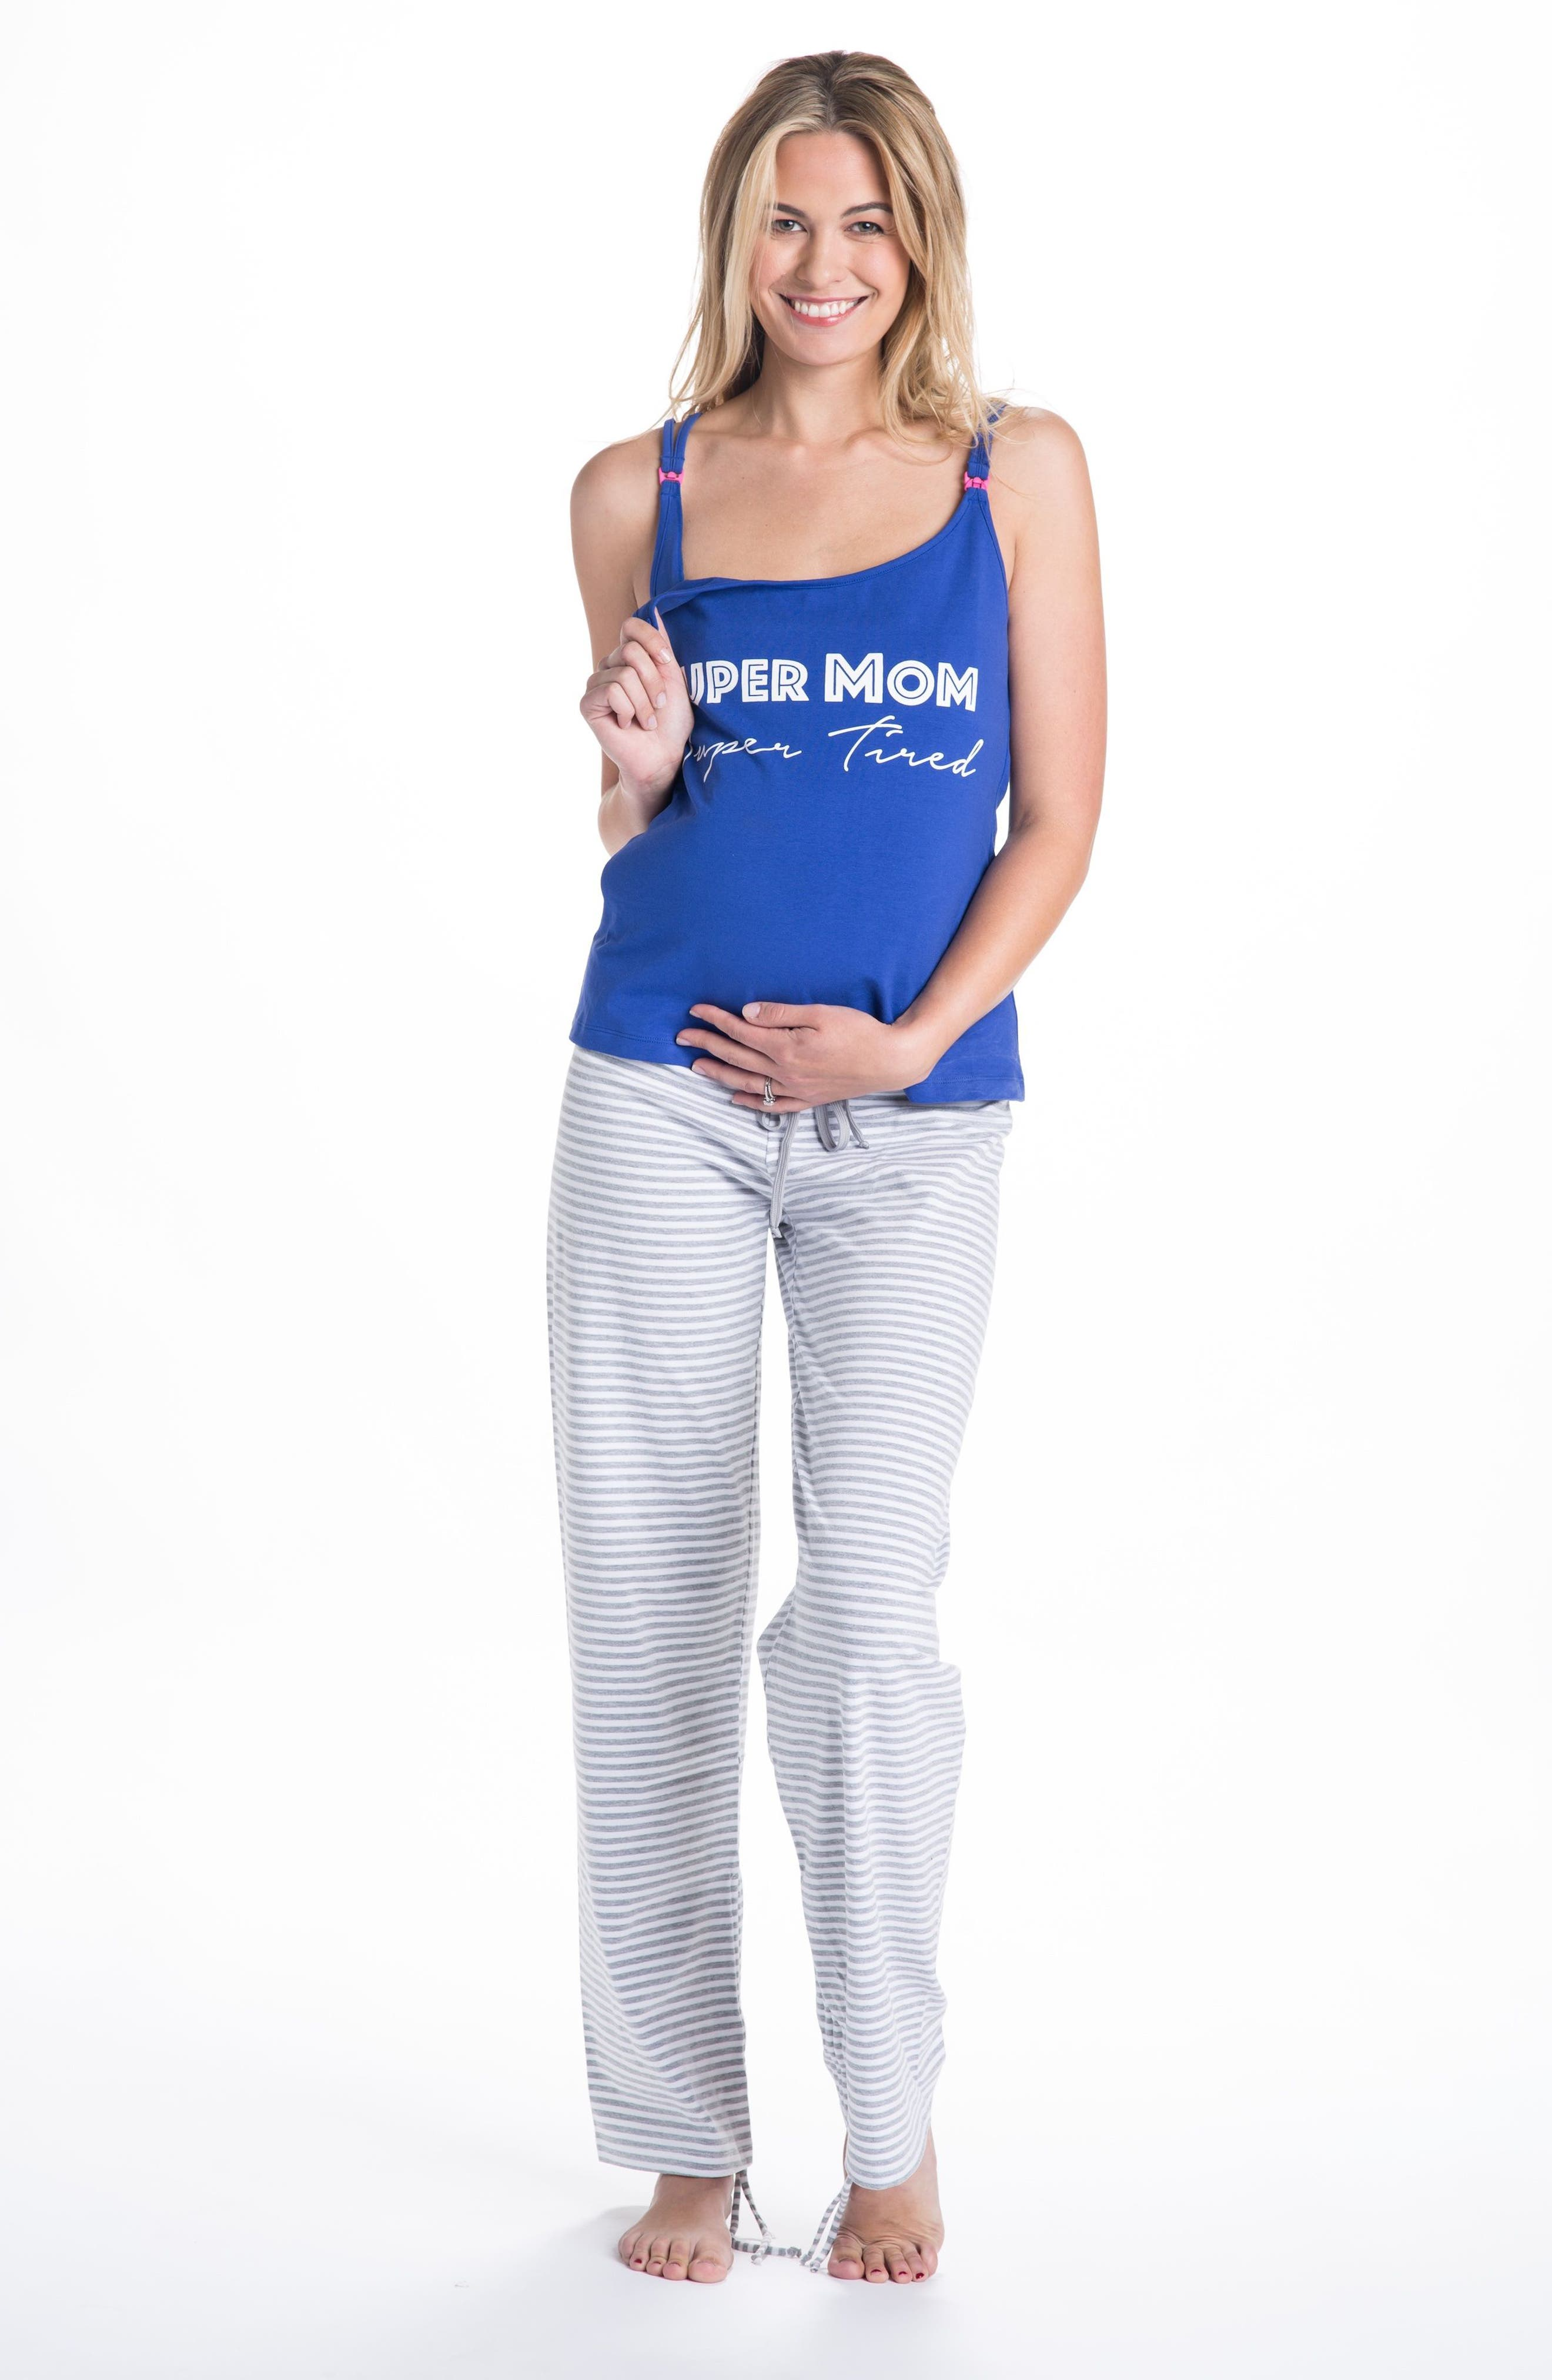 Trudy Super Mom Maternity/Nursing Pajamas,                             Alternate thumbnail 3, color,                             Navy Blue/ Gray/ White Stripes